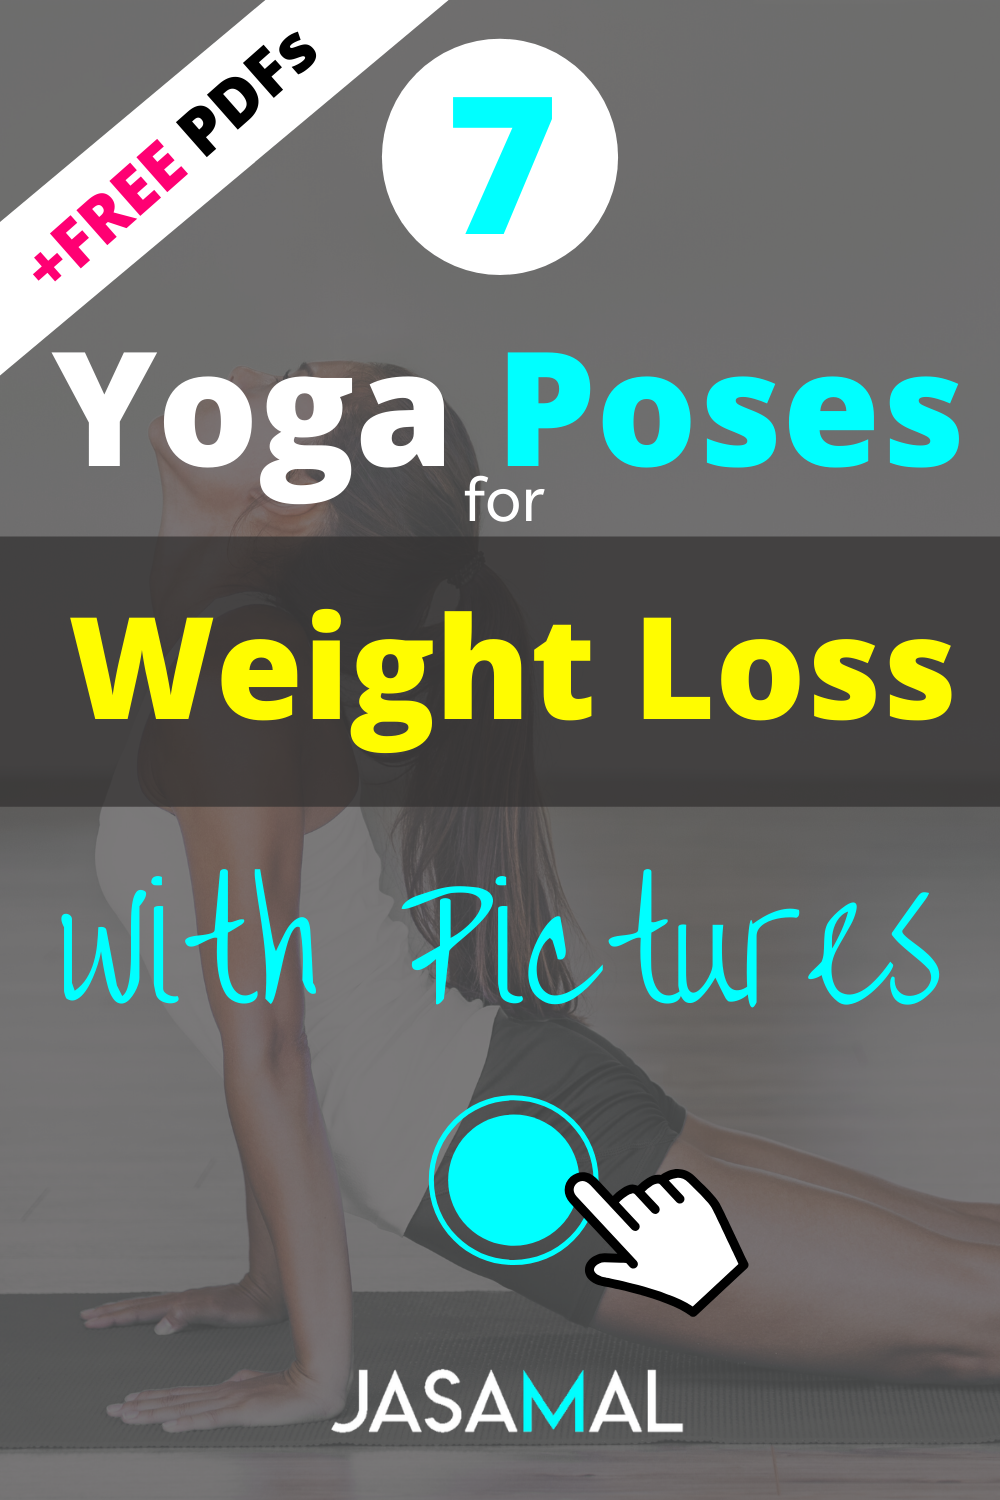 7 Must Know Yoga Poses for Weight Loss - Beginners - Jasamal